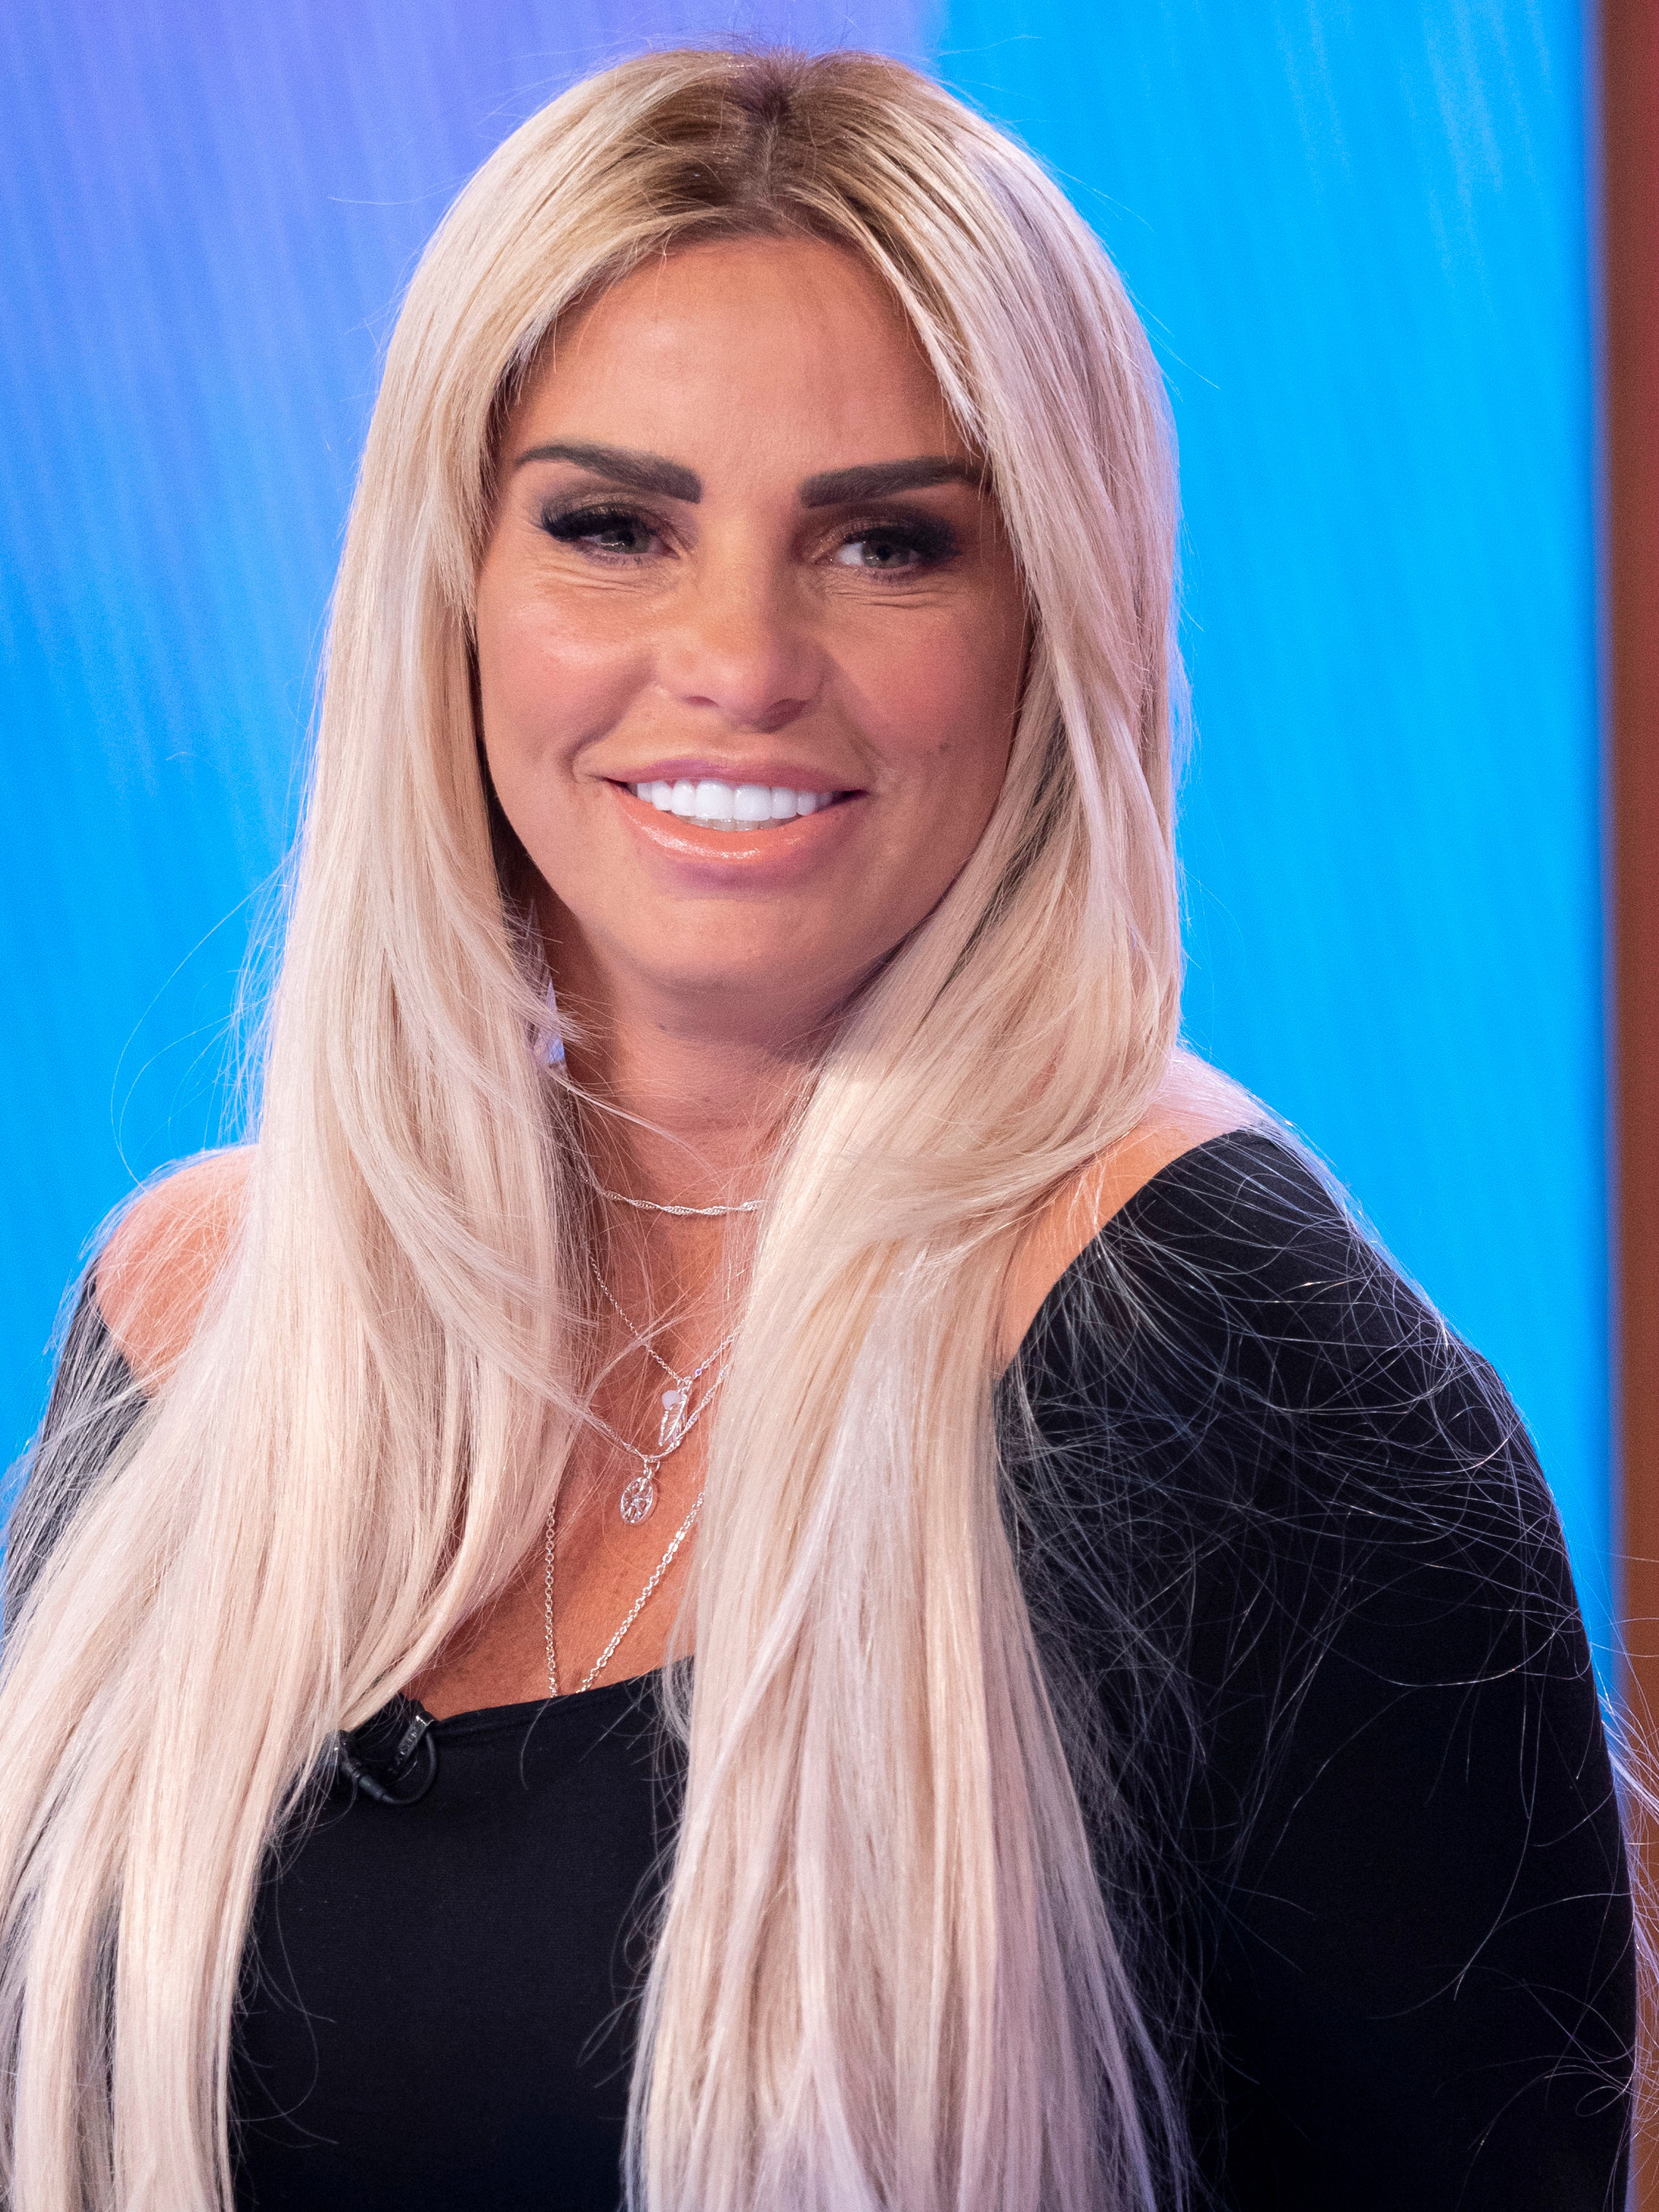 Katie Price 'denies she's launching porn career' after forking out on more plastic surgery